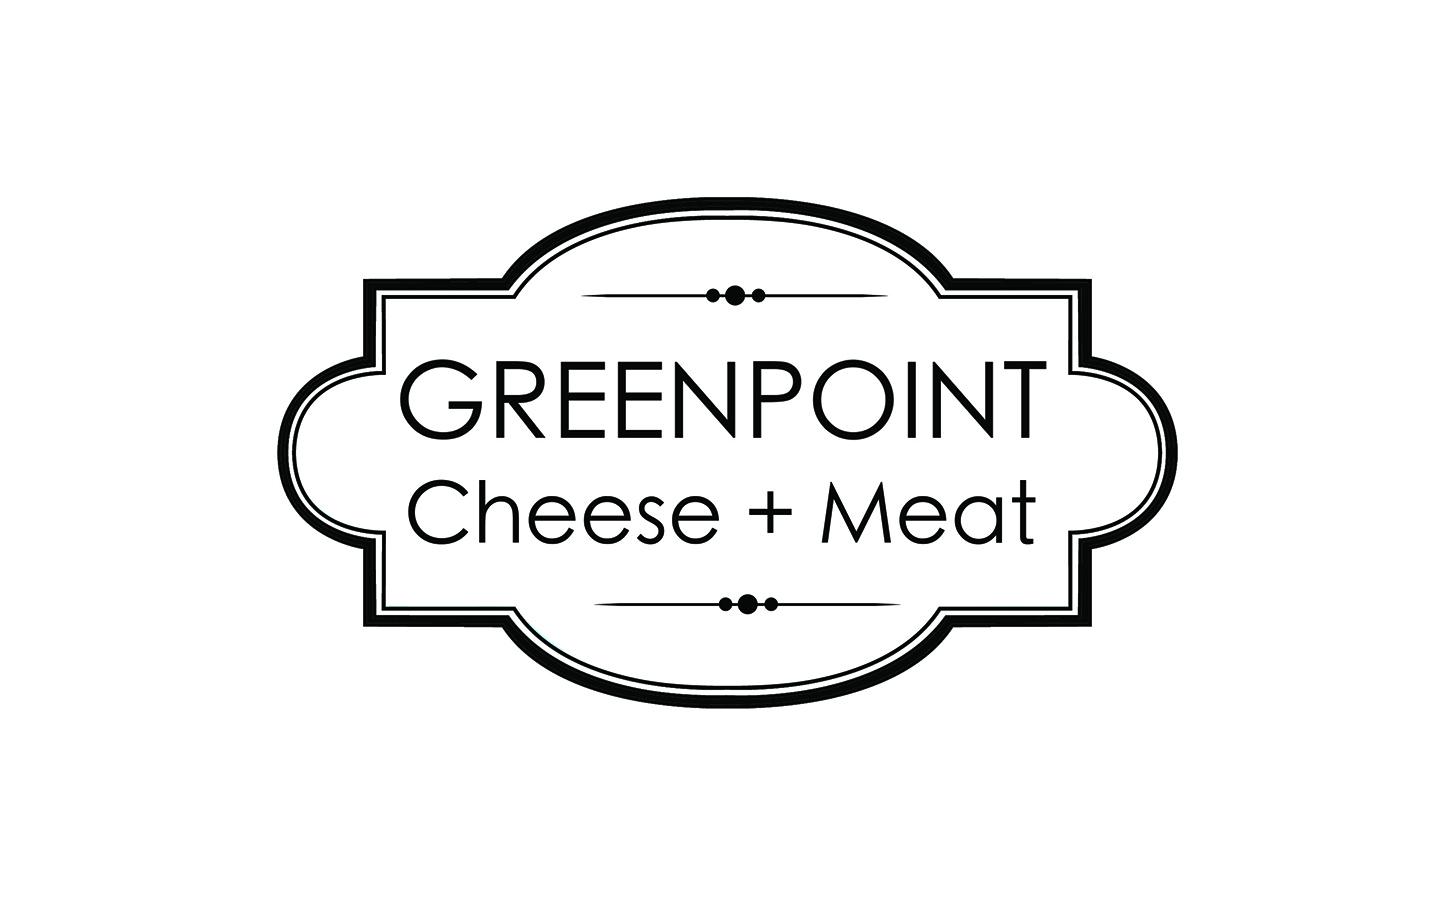 Greenpoint Cheese + Meat